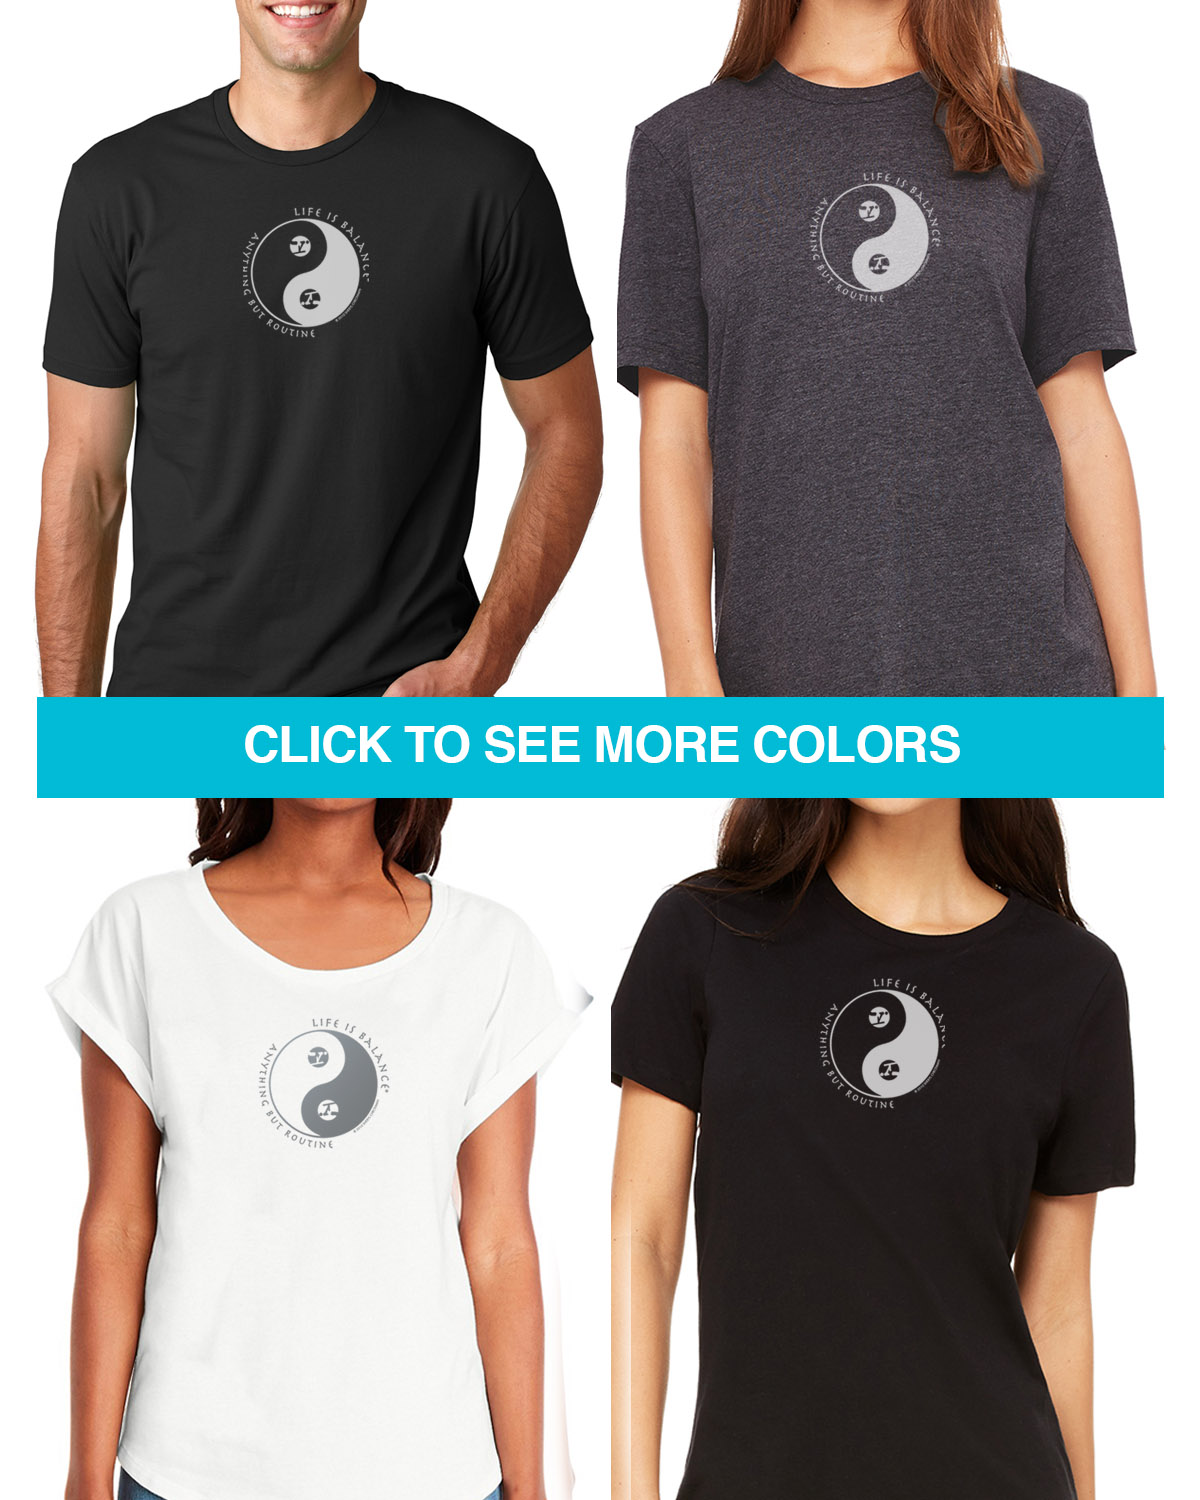 Gymnastics Tees for Men & Women